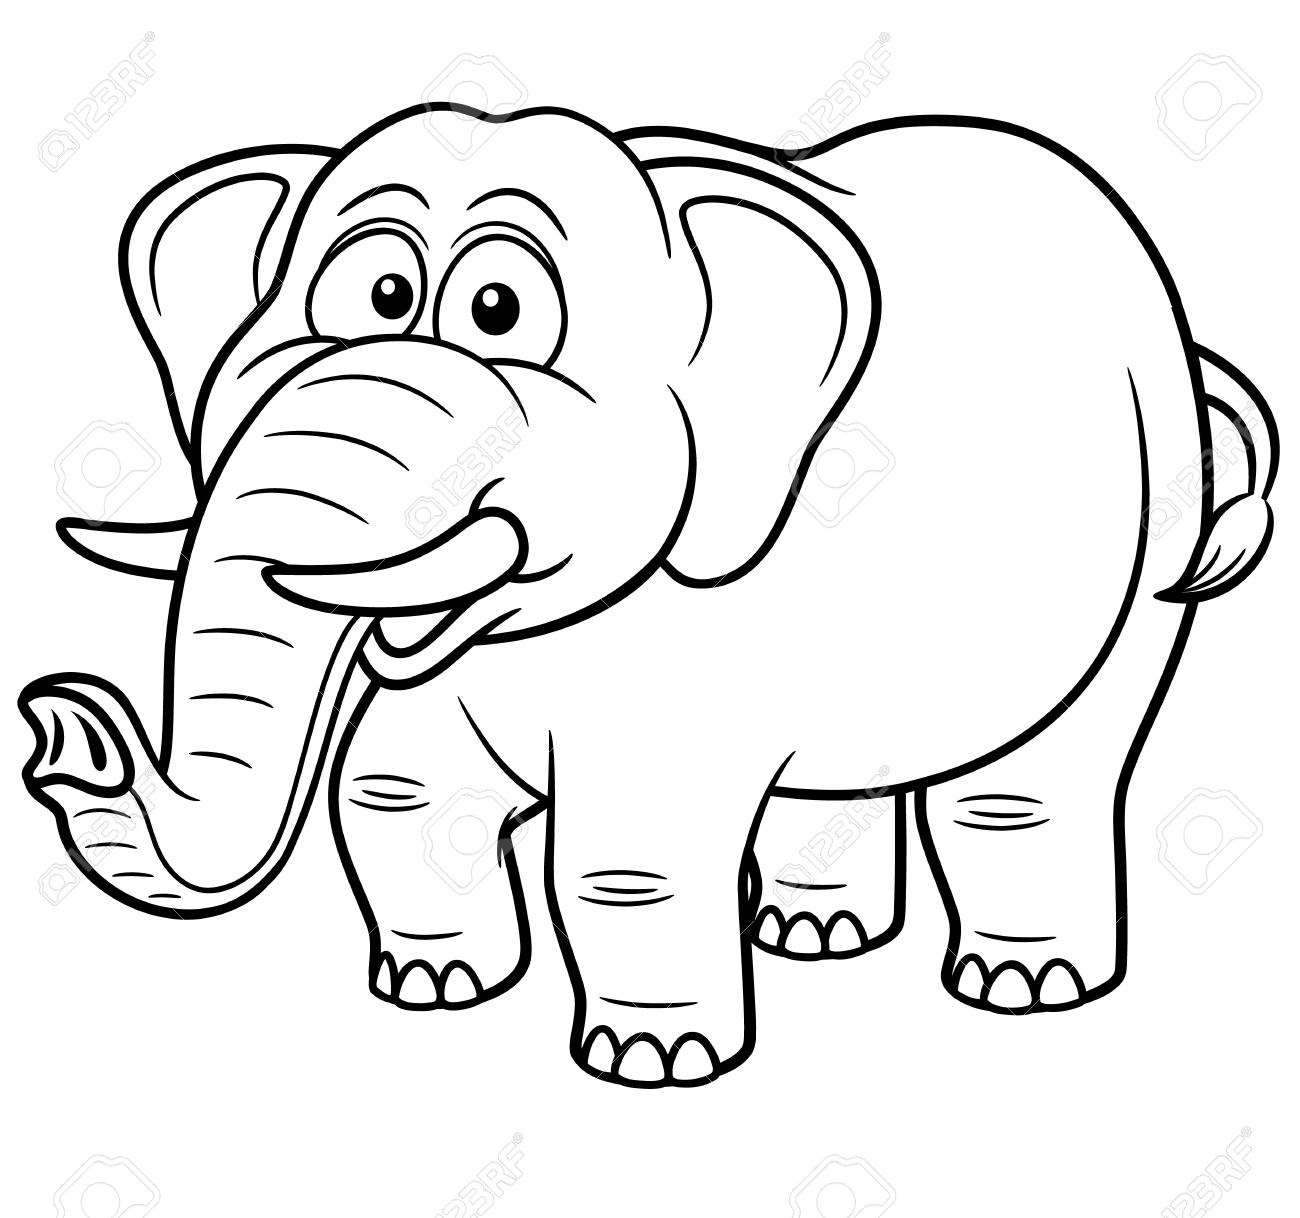 Elephant Line Drawing at GetDrawings com | Free for personal use